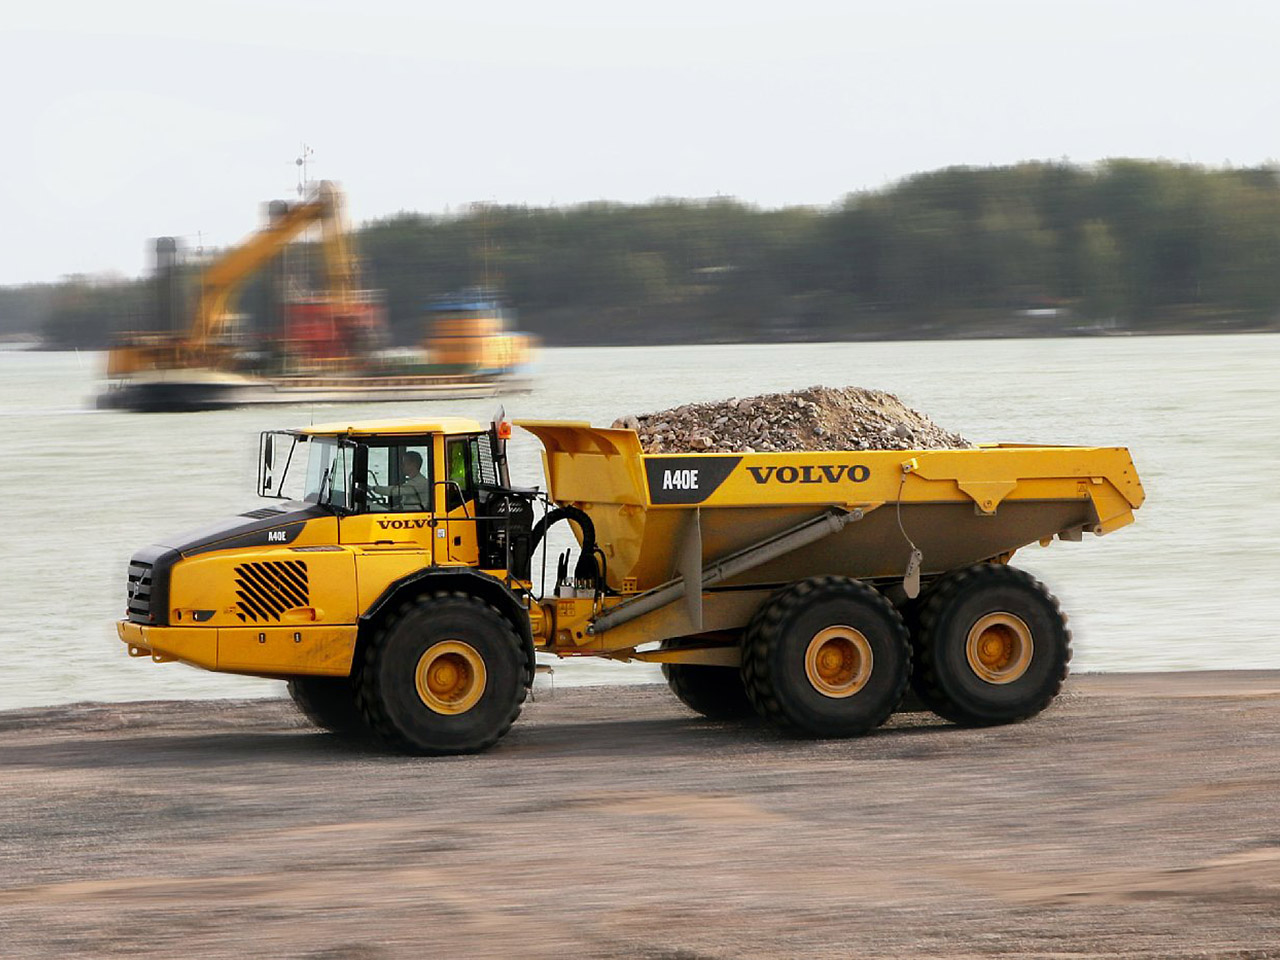 Volvo A40 photos - PhotoGallery with 18 pics| CarsBase.com